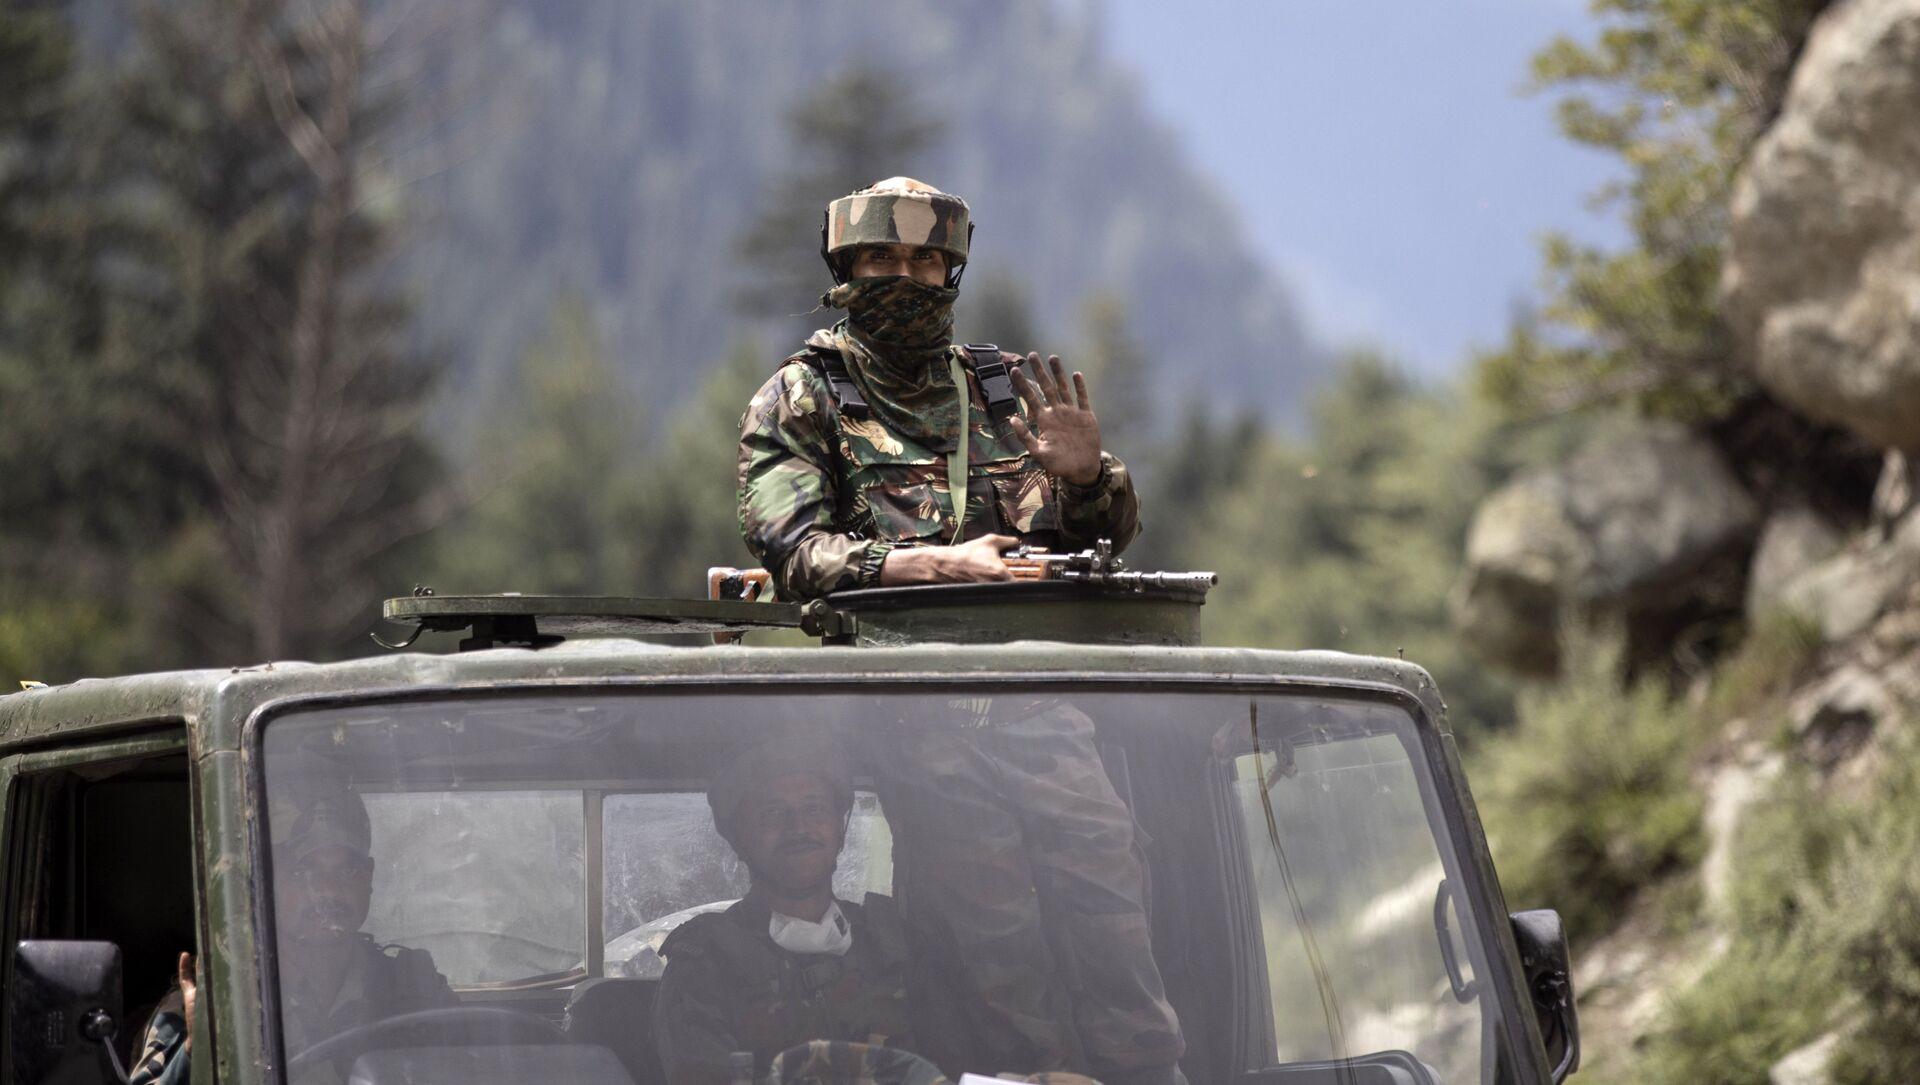 An Indian army soldier keeps guard on top of his vehicle as their convoy moves on the Srinagar- Ladakh highway at Gagangeer, north-east of Srinagar, Indian-controlled Kashmir on Tuesday, 1 September 2020. - Sputnik International, 1920, 30.07.2021